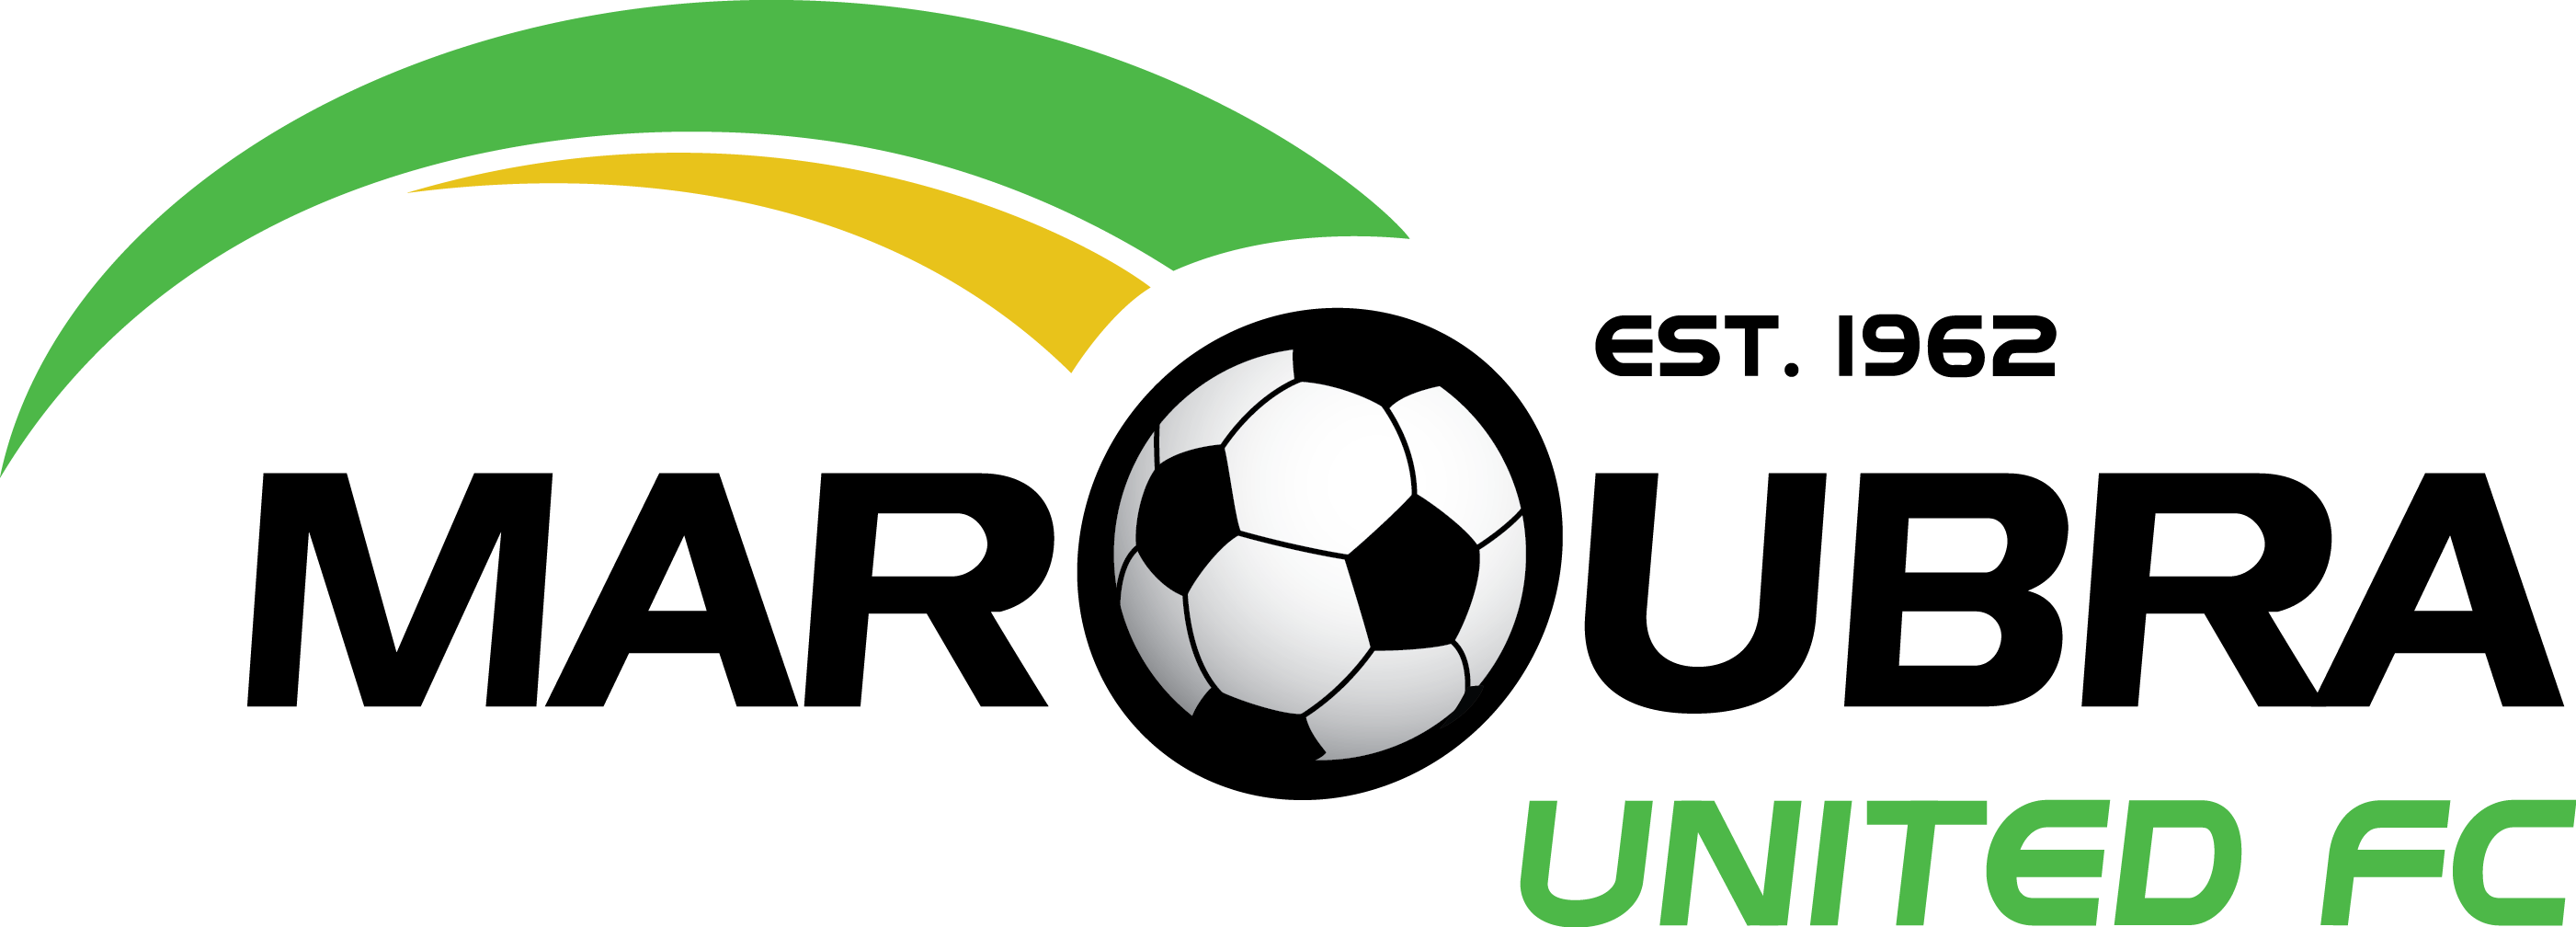 cropped-cropped-mufc-logo.png